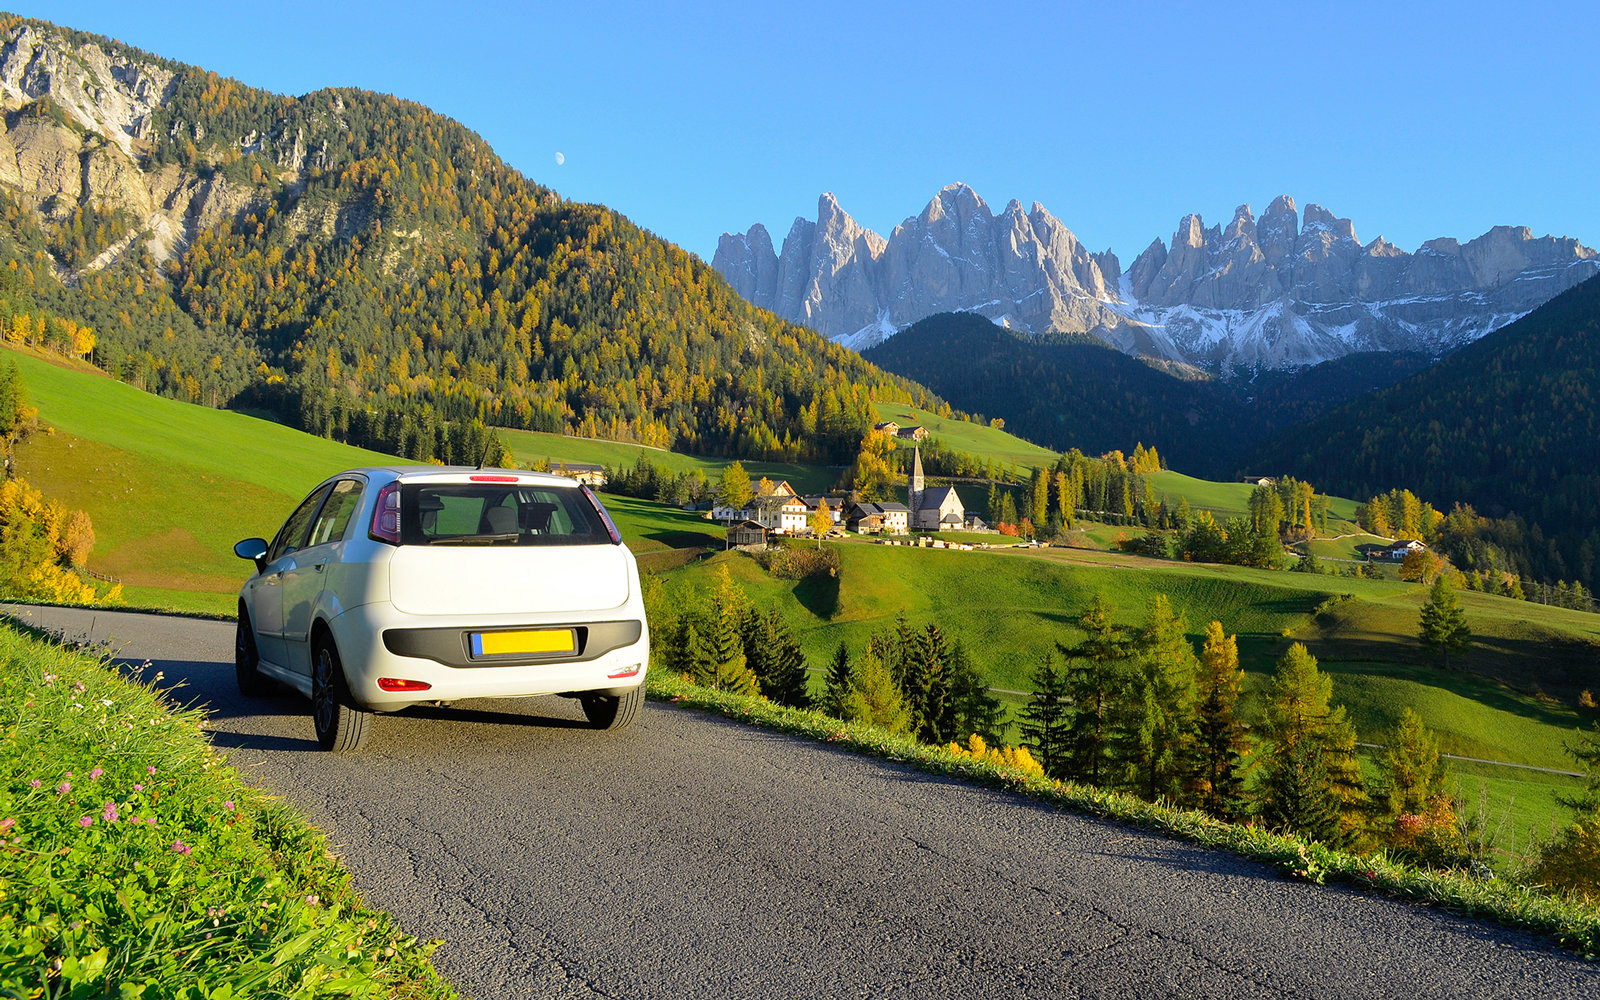 Rental Car in Funes valley in Dolomites area in South Tyrol, Italy